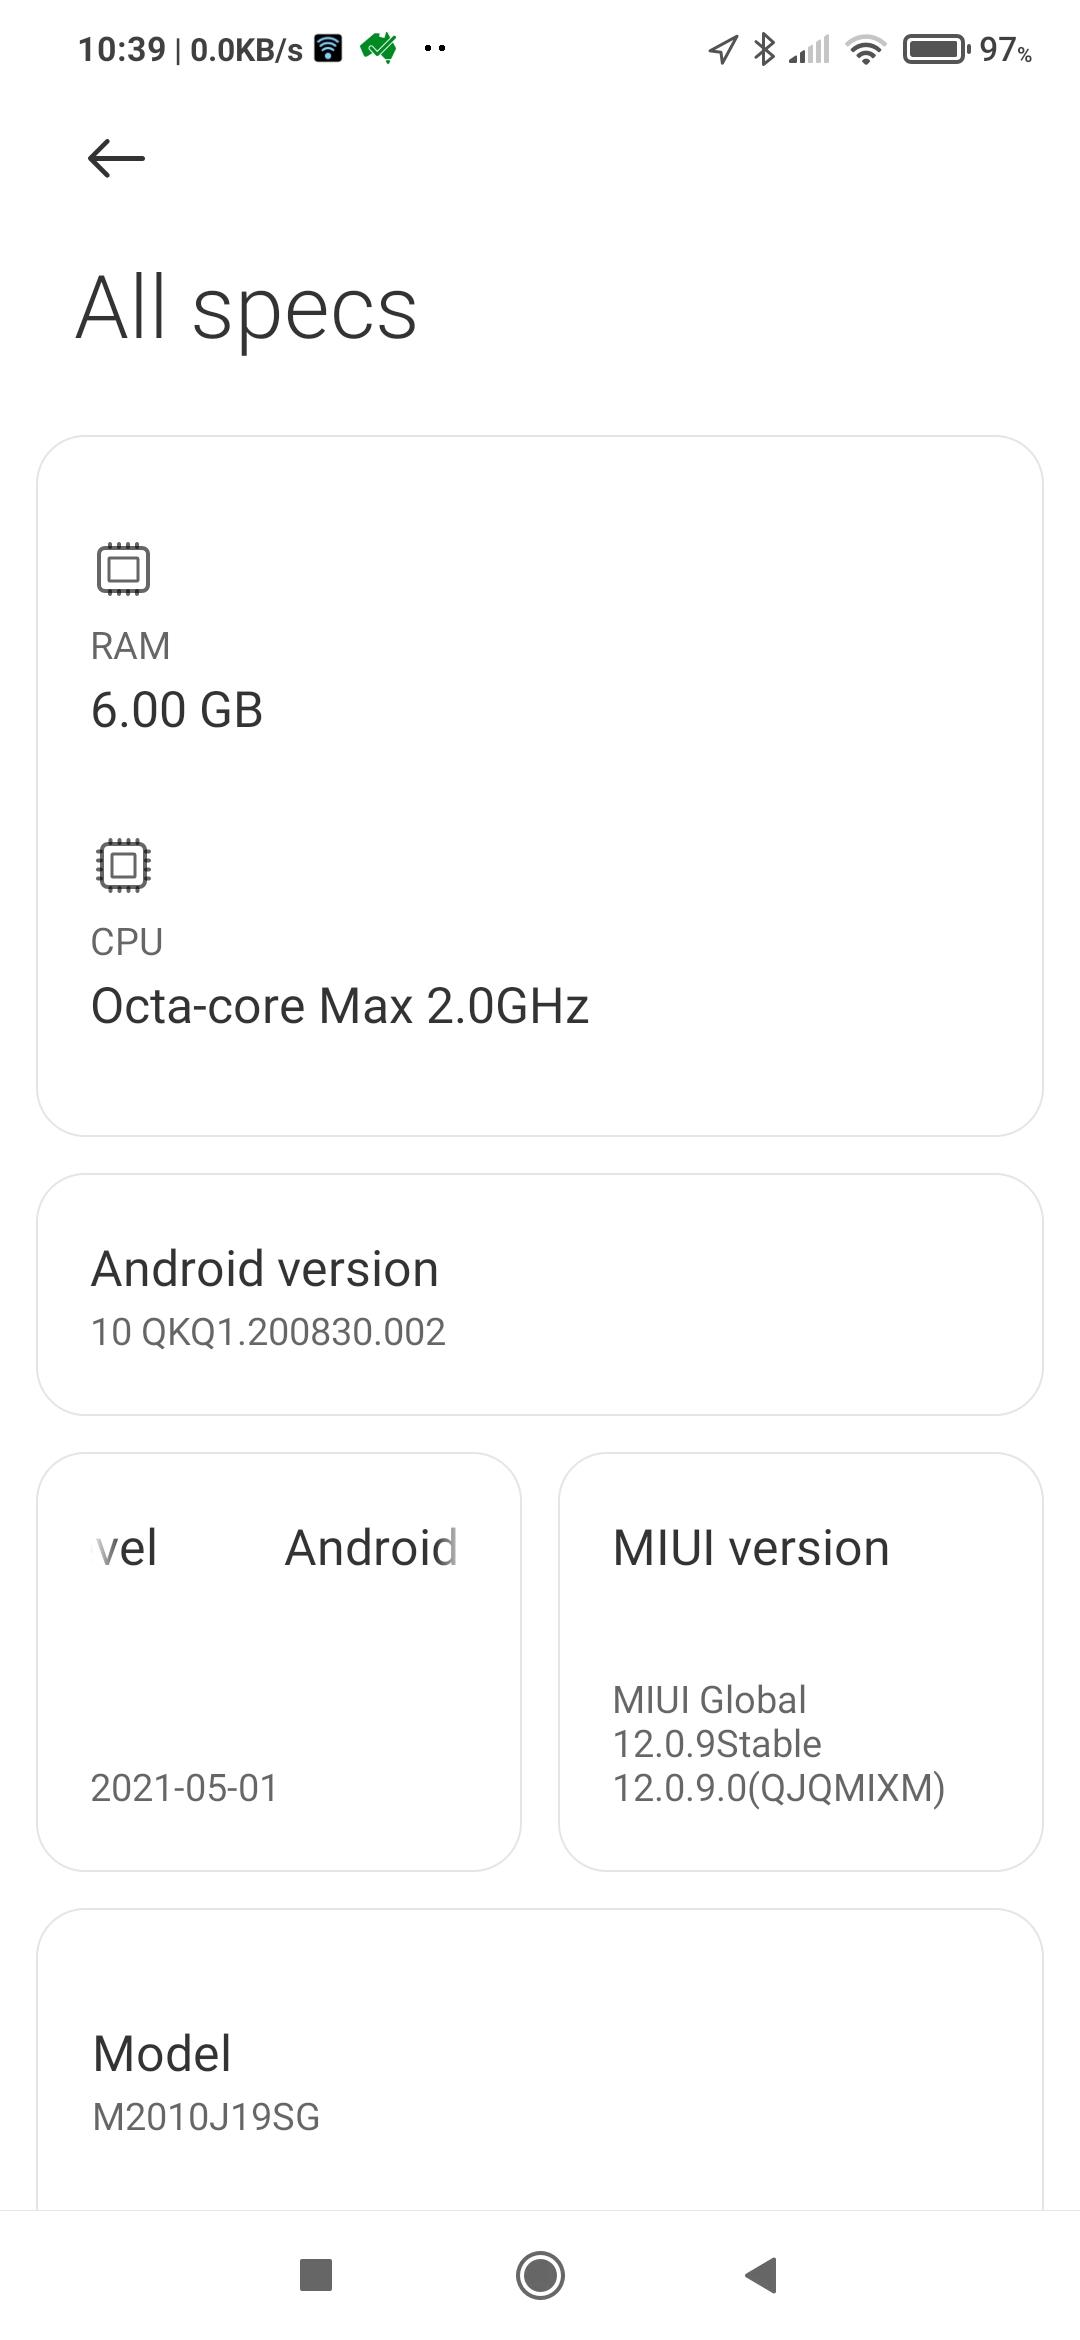 This should be Redmi-info-2.jpeg.  Is it missing?